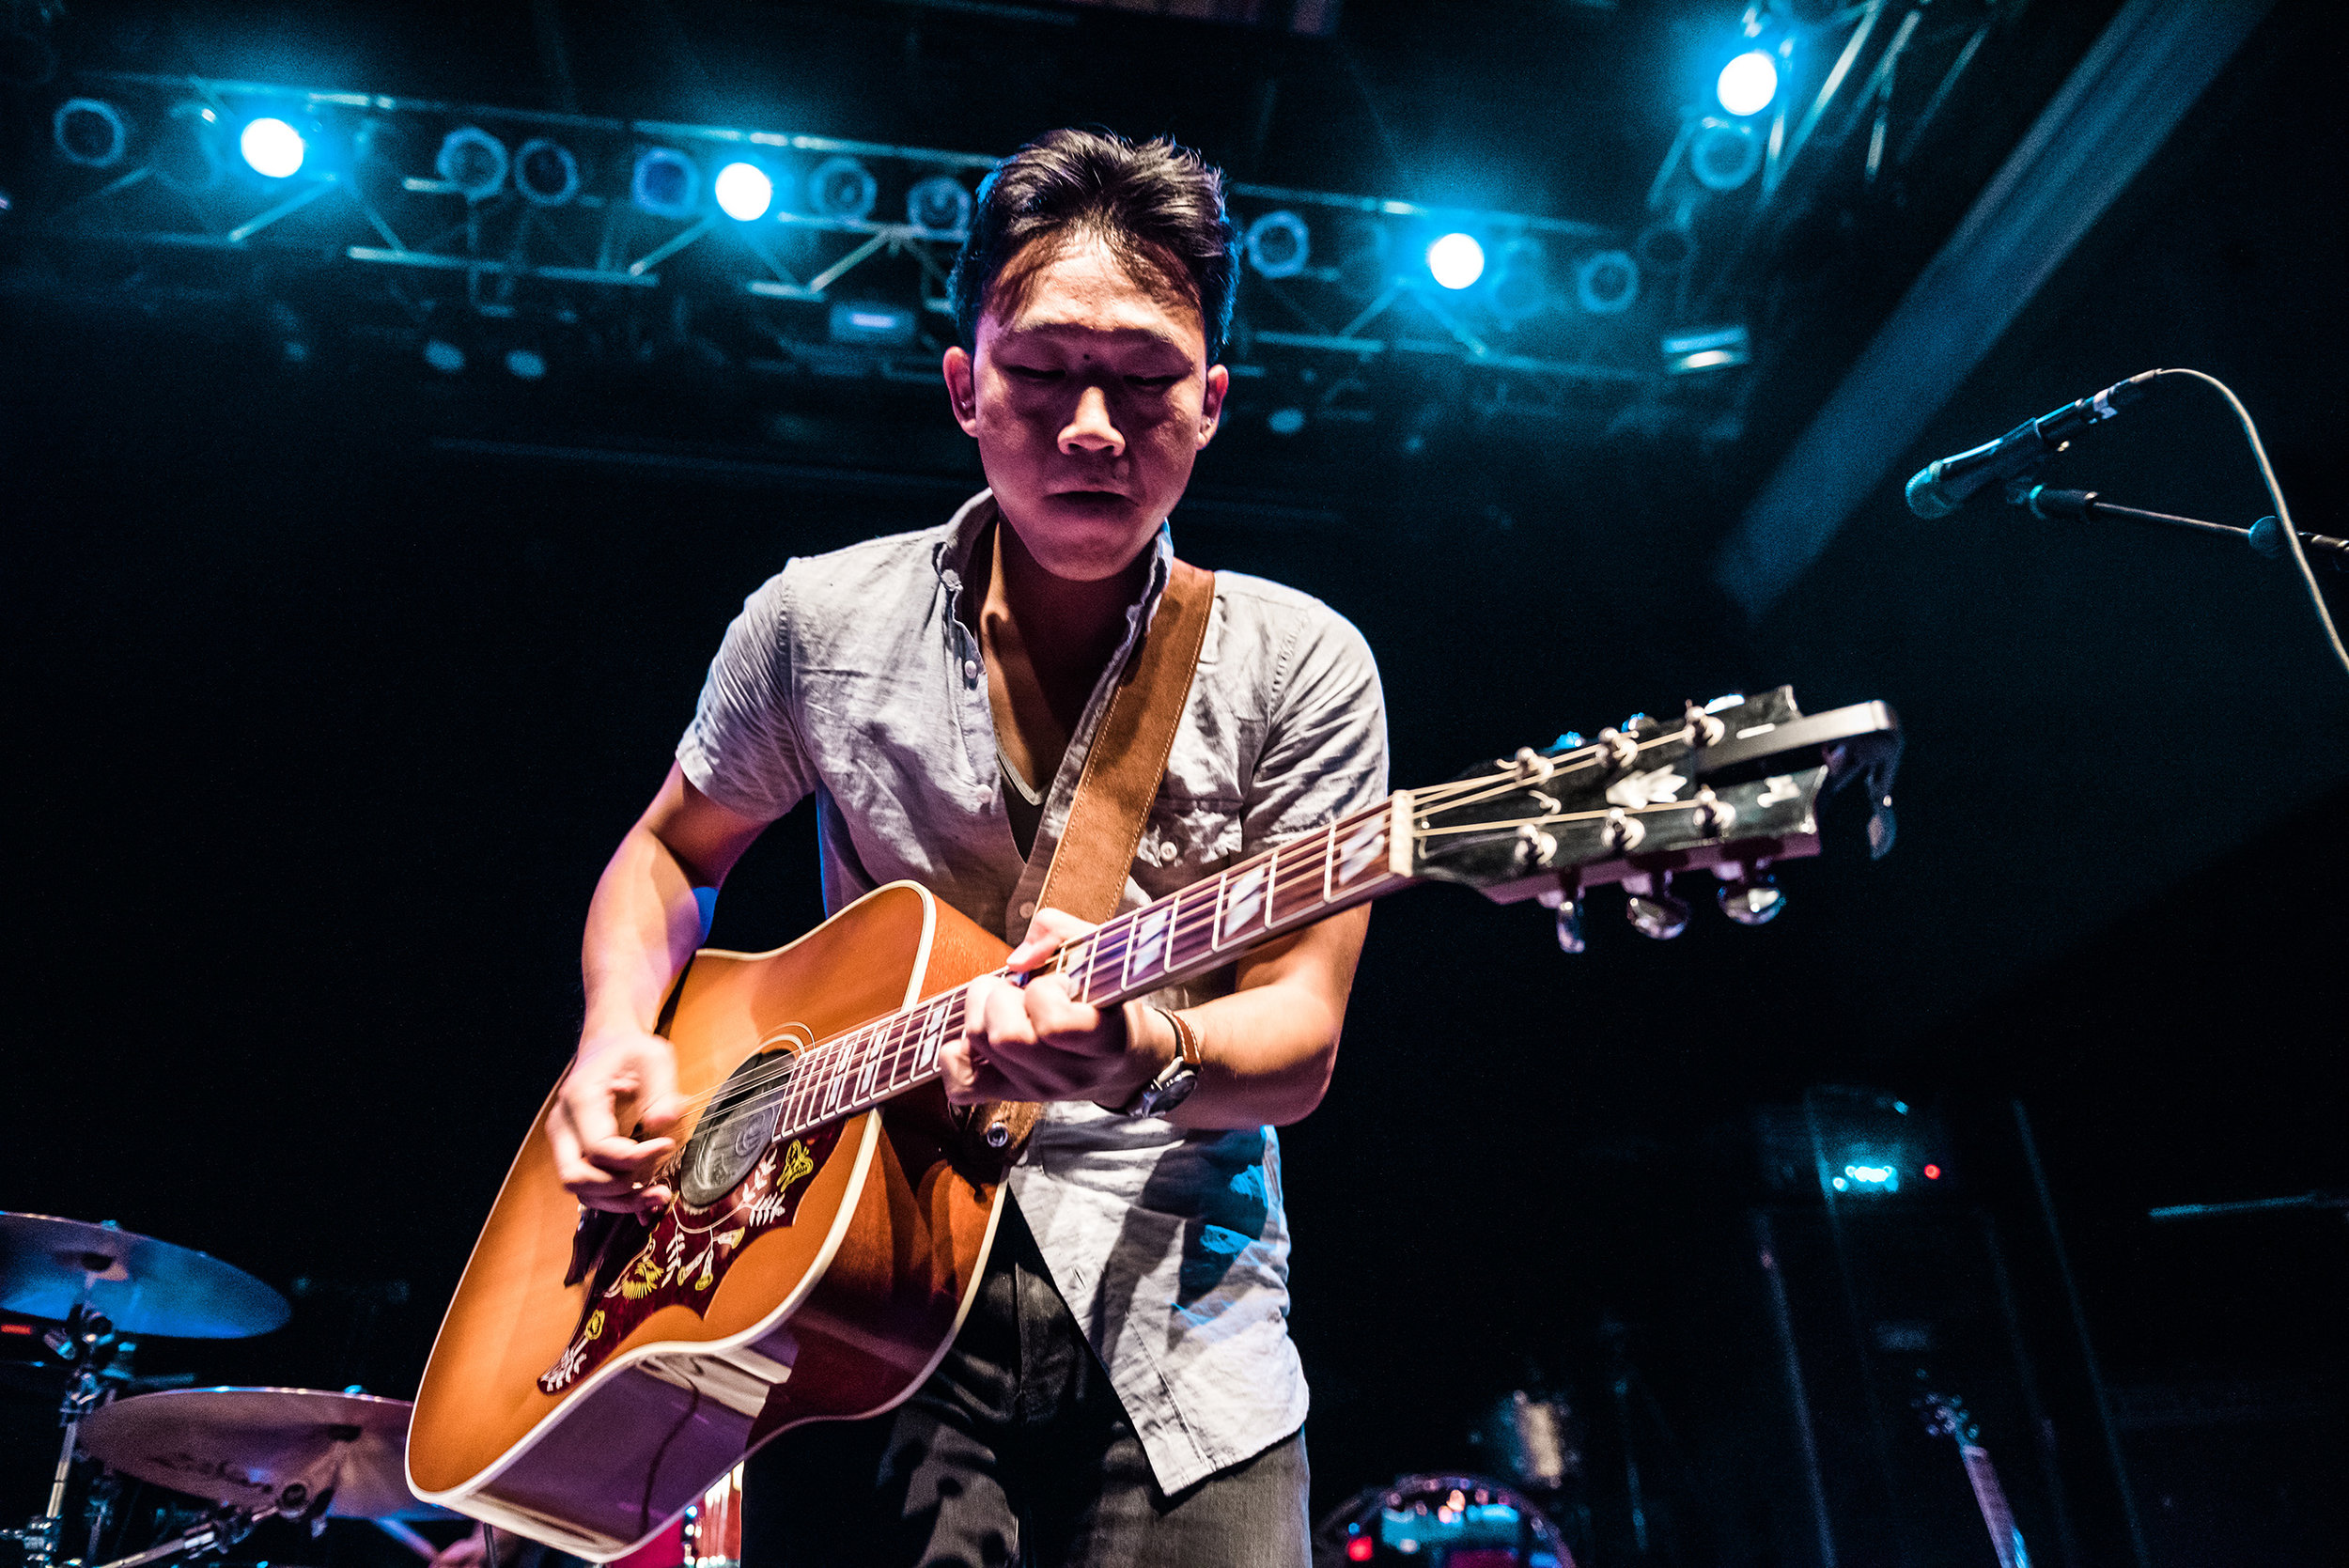 Skyline Hotel - 930 Club - Jon Lee 11.jpg